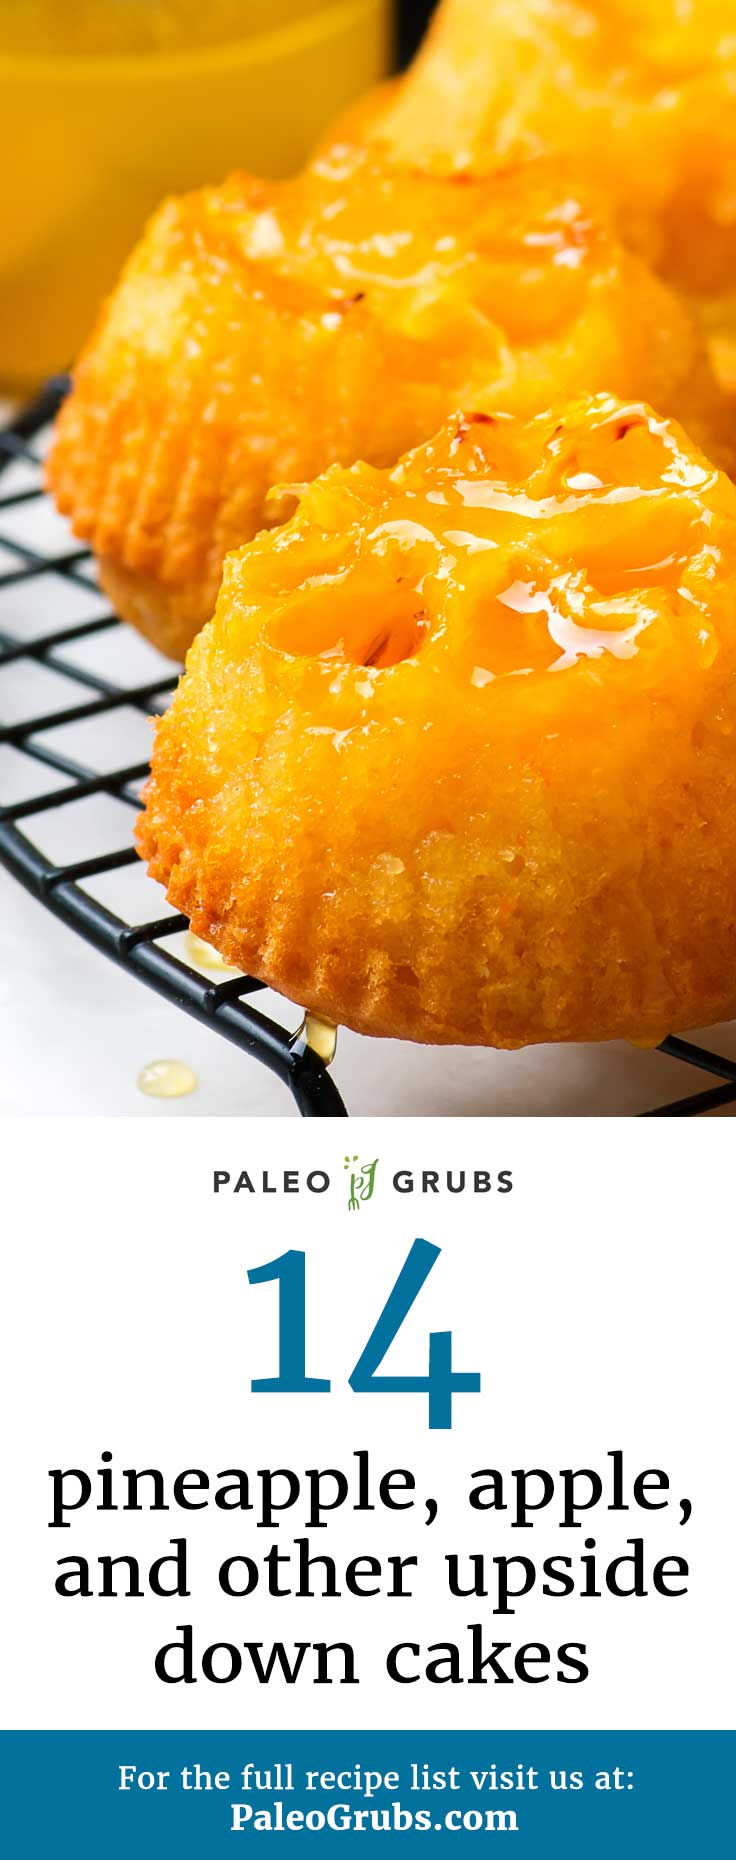 Here are some great ideas if you love pineapple upside down cake.